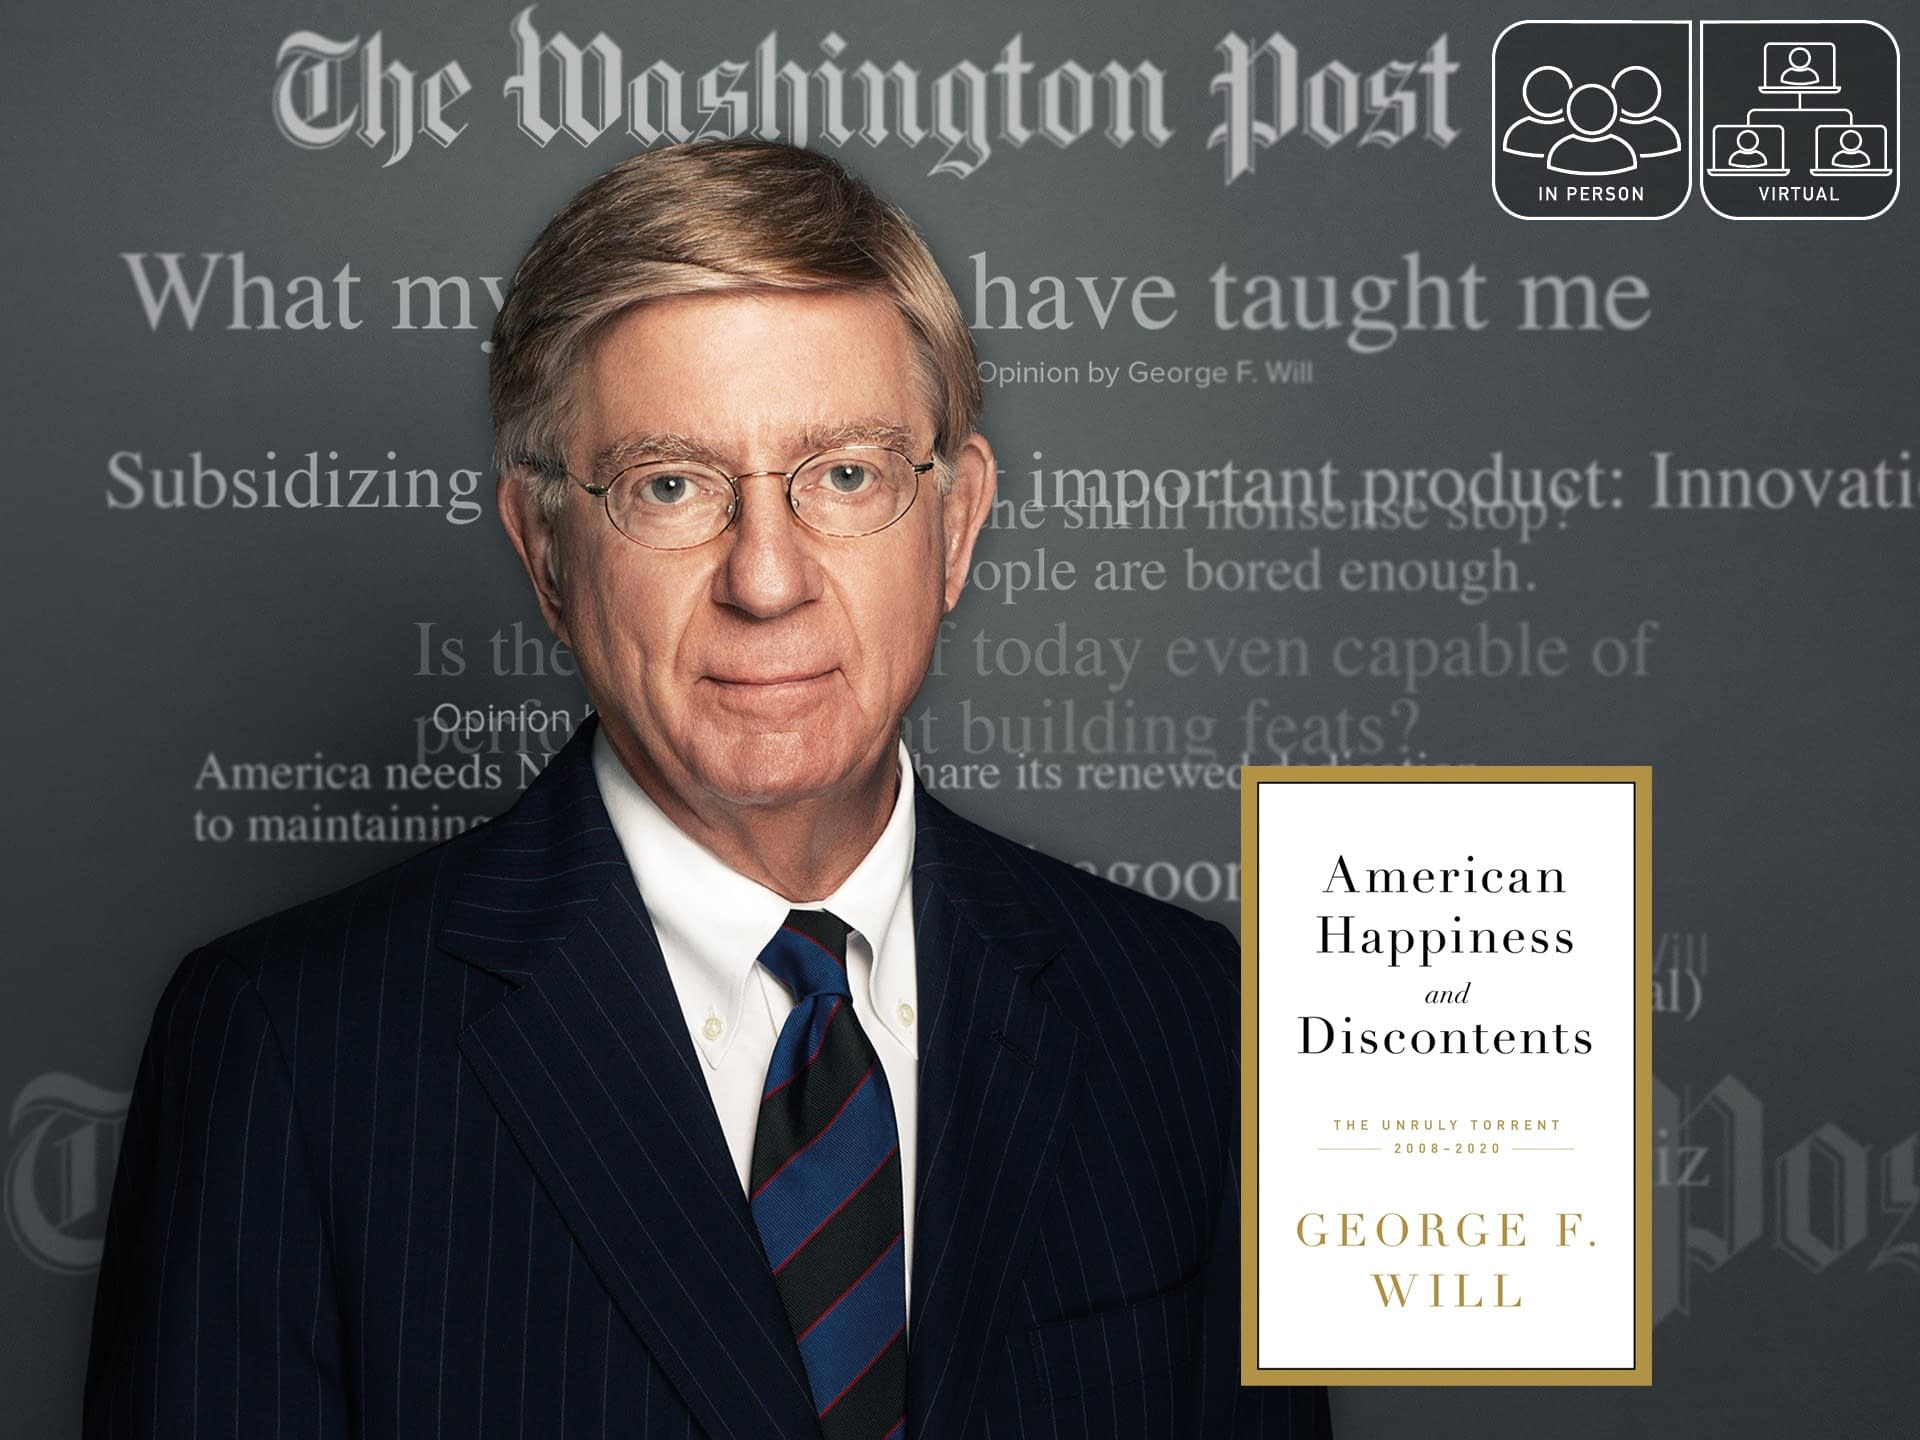 George Will: American Happiness and Discontents: The Unruly Torrent, 2008-2020 3 - - author